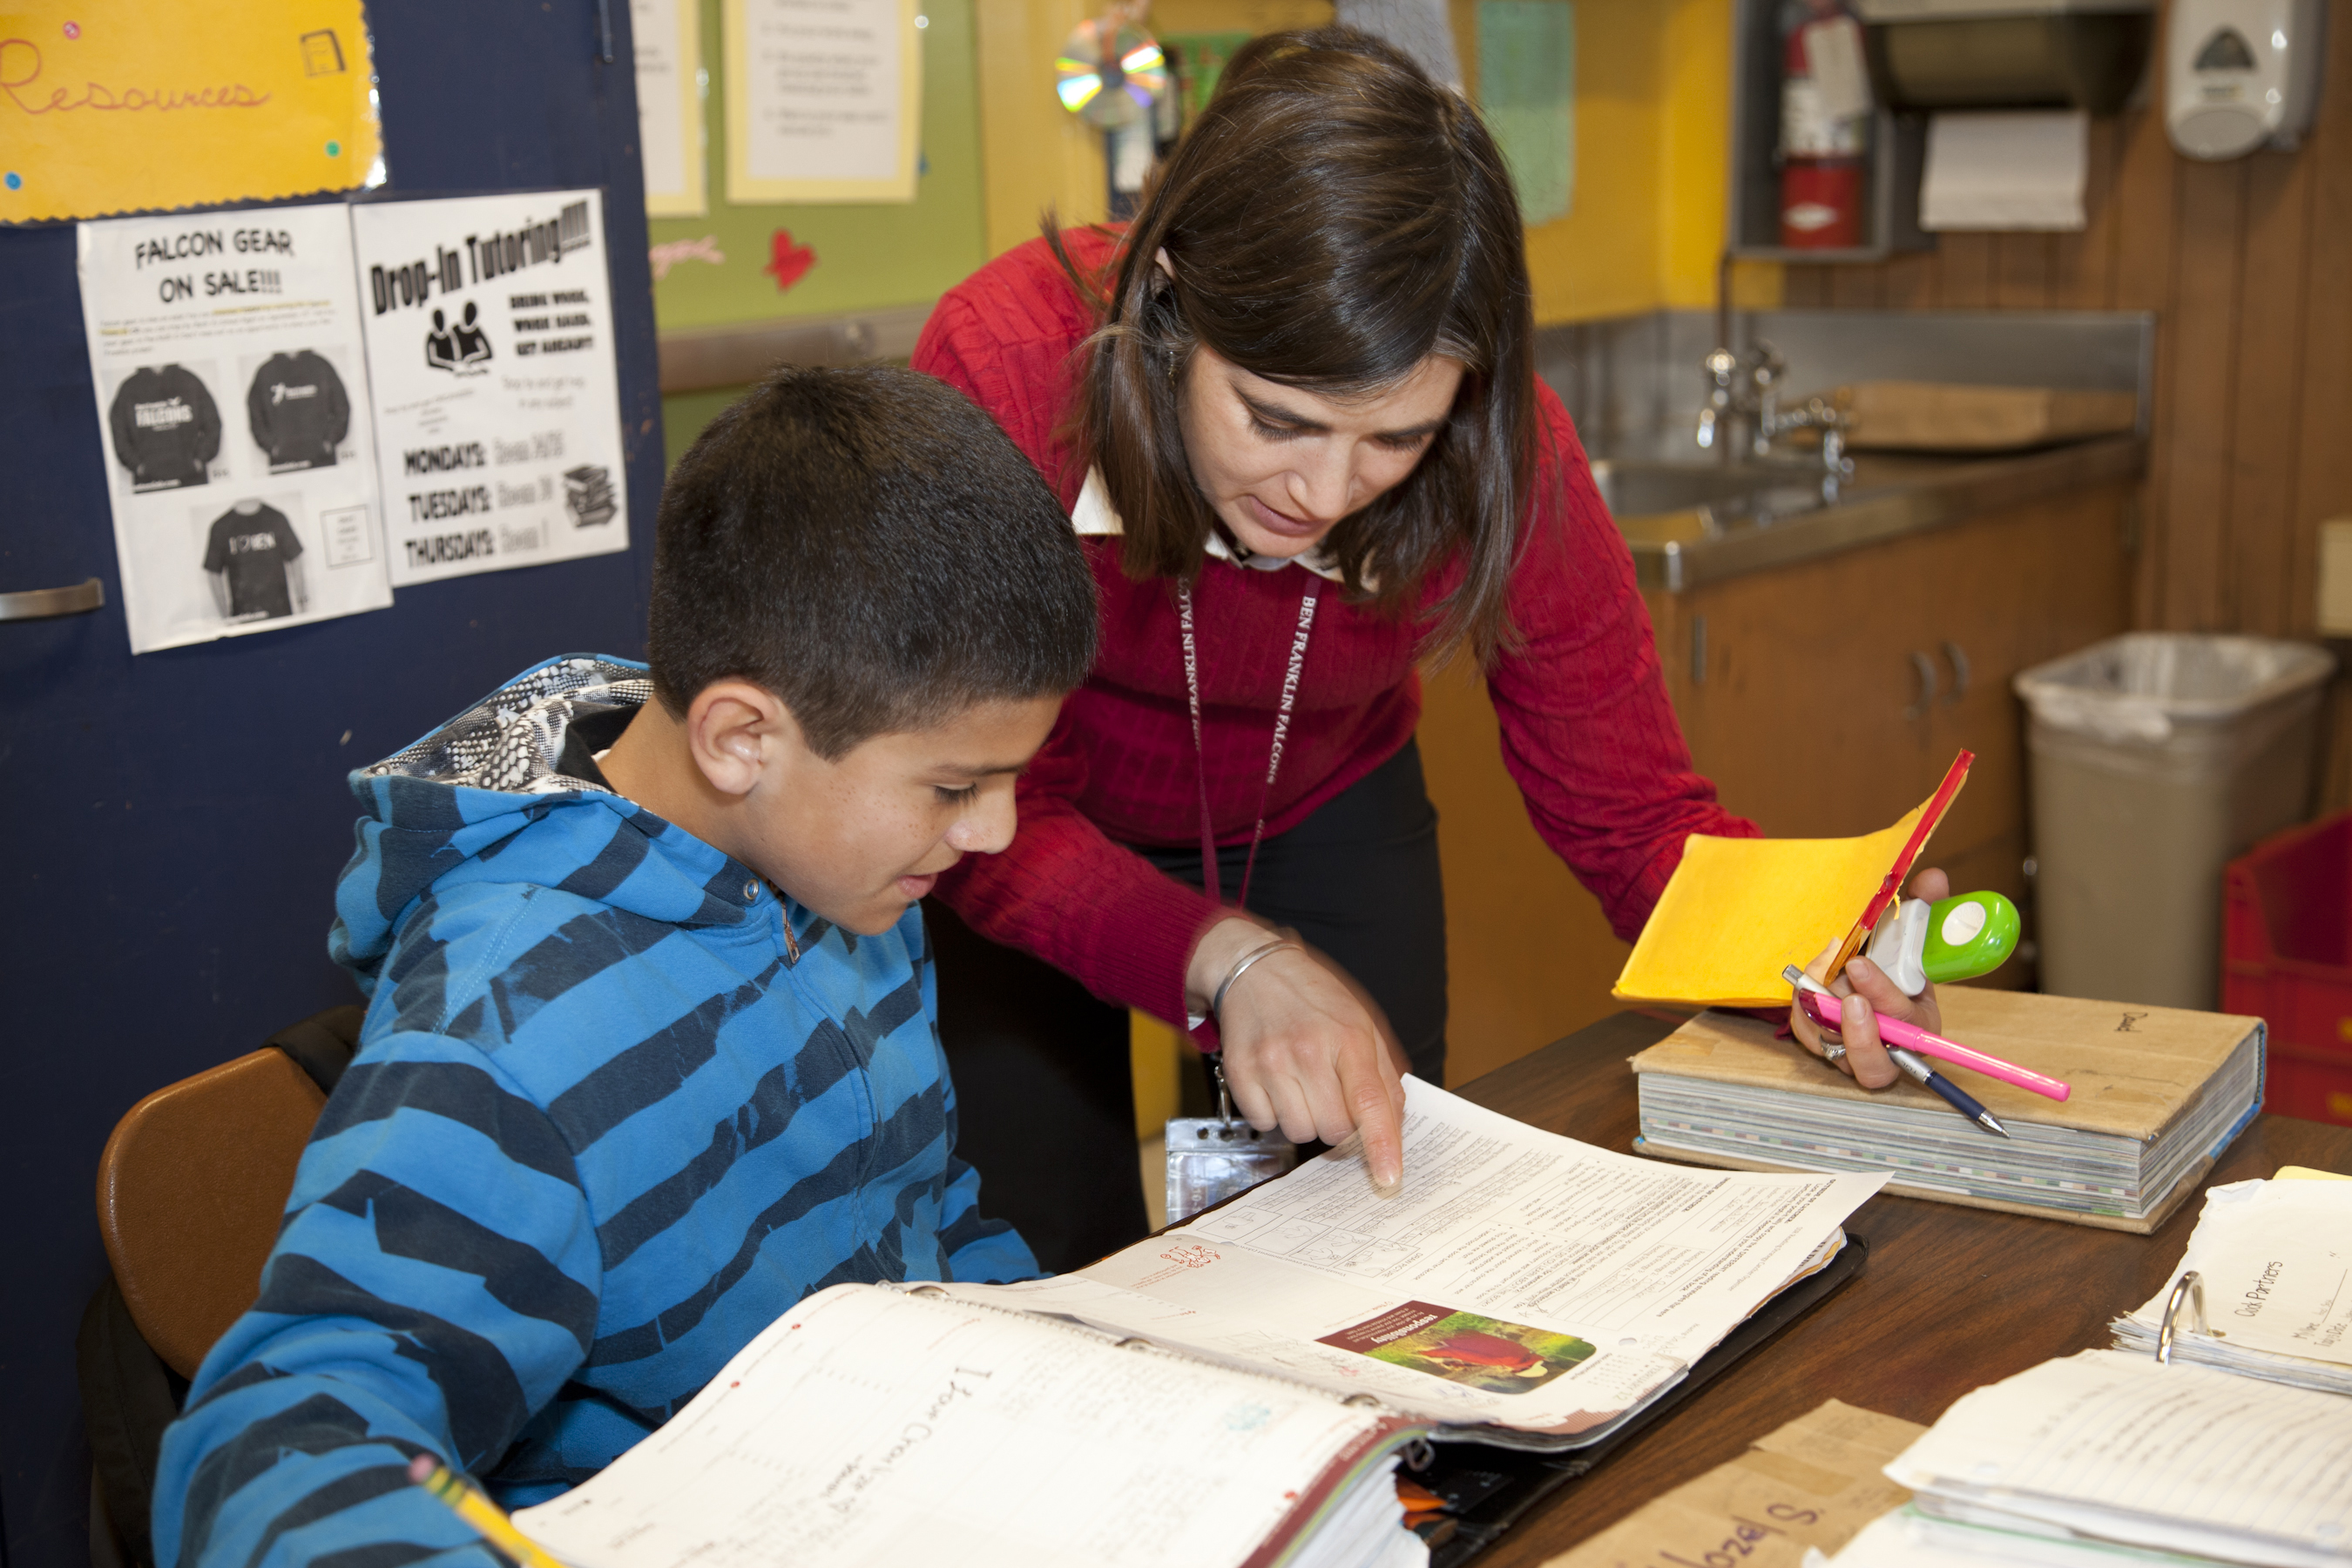 In Case You Missed It: What Makes a Great Teacher